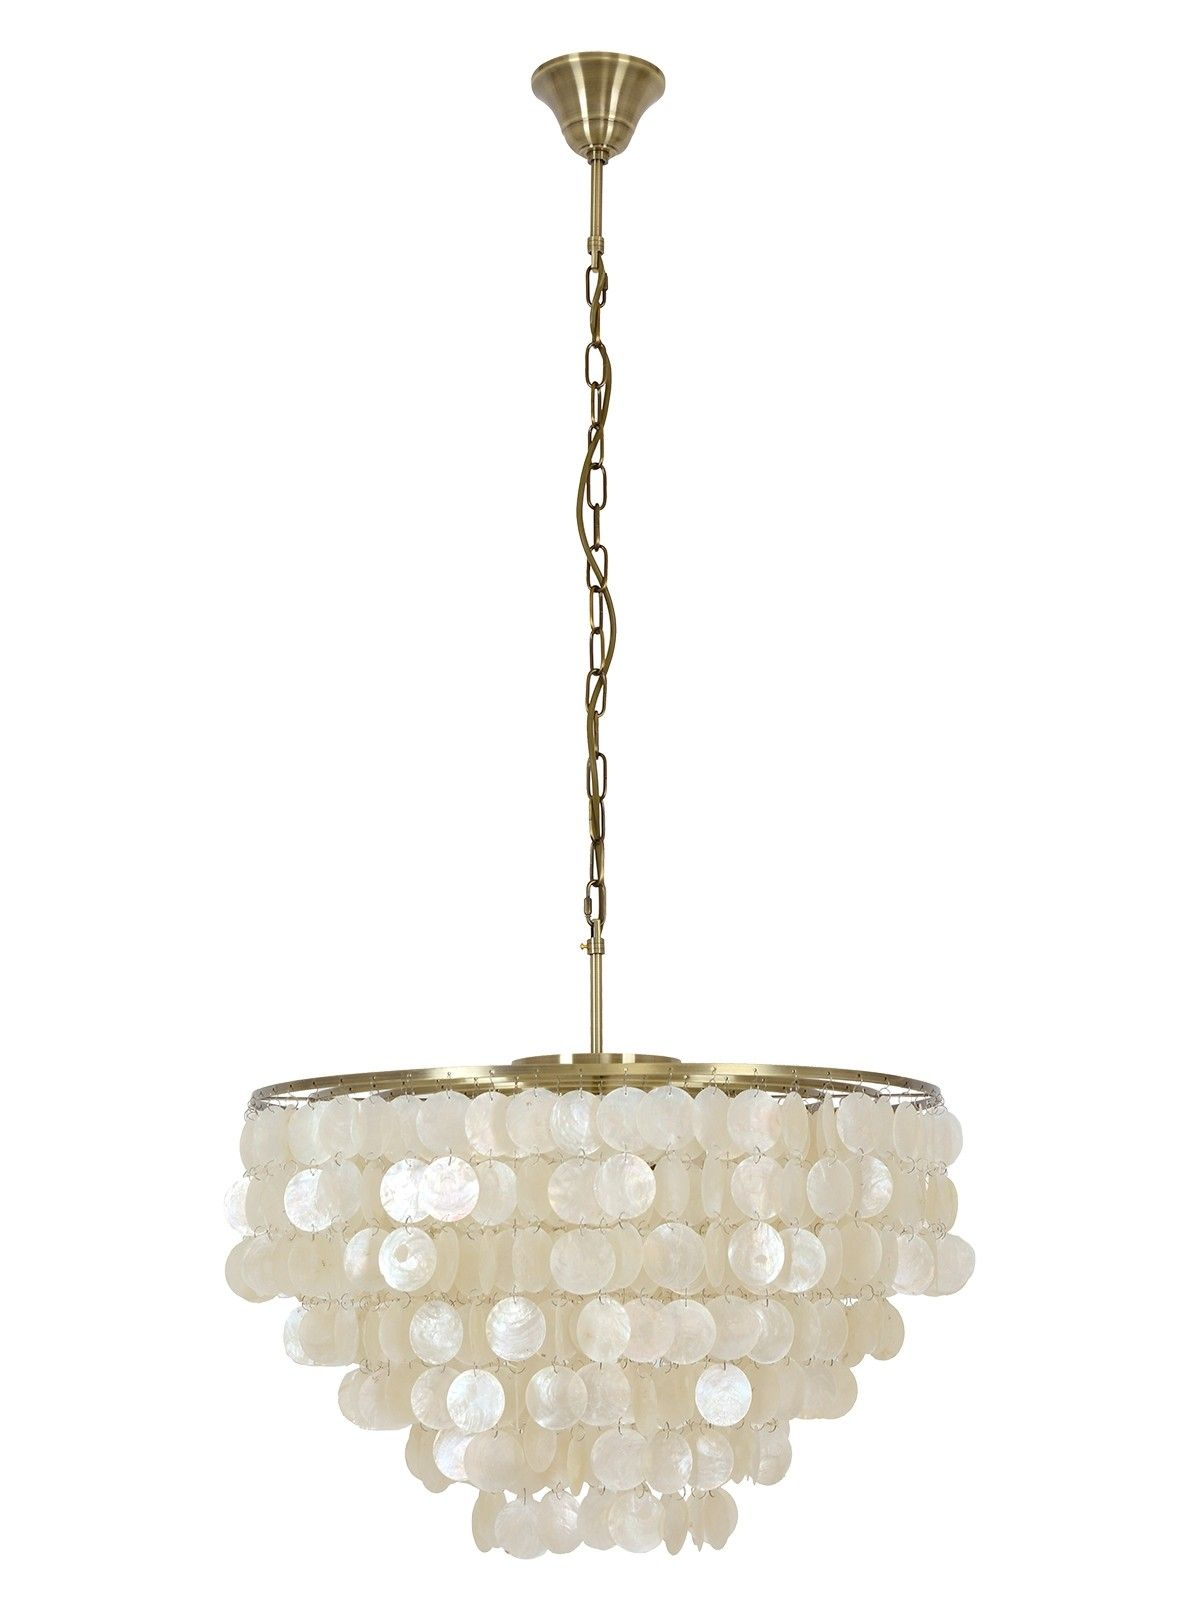 Dunne 6 Light Pendant Or Close To Ceiling Fitting In Antique Brass Pendant Lighting Beacon Lighting Ceiling Pendant Lights